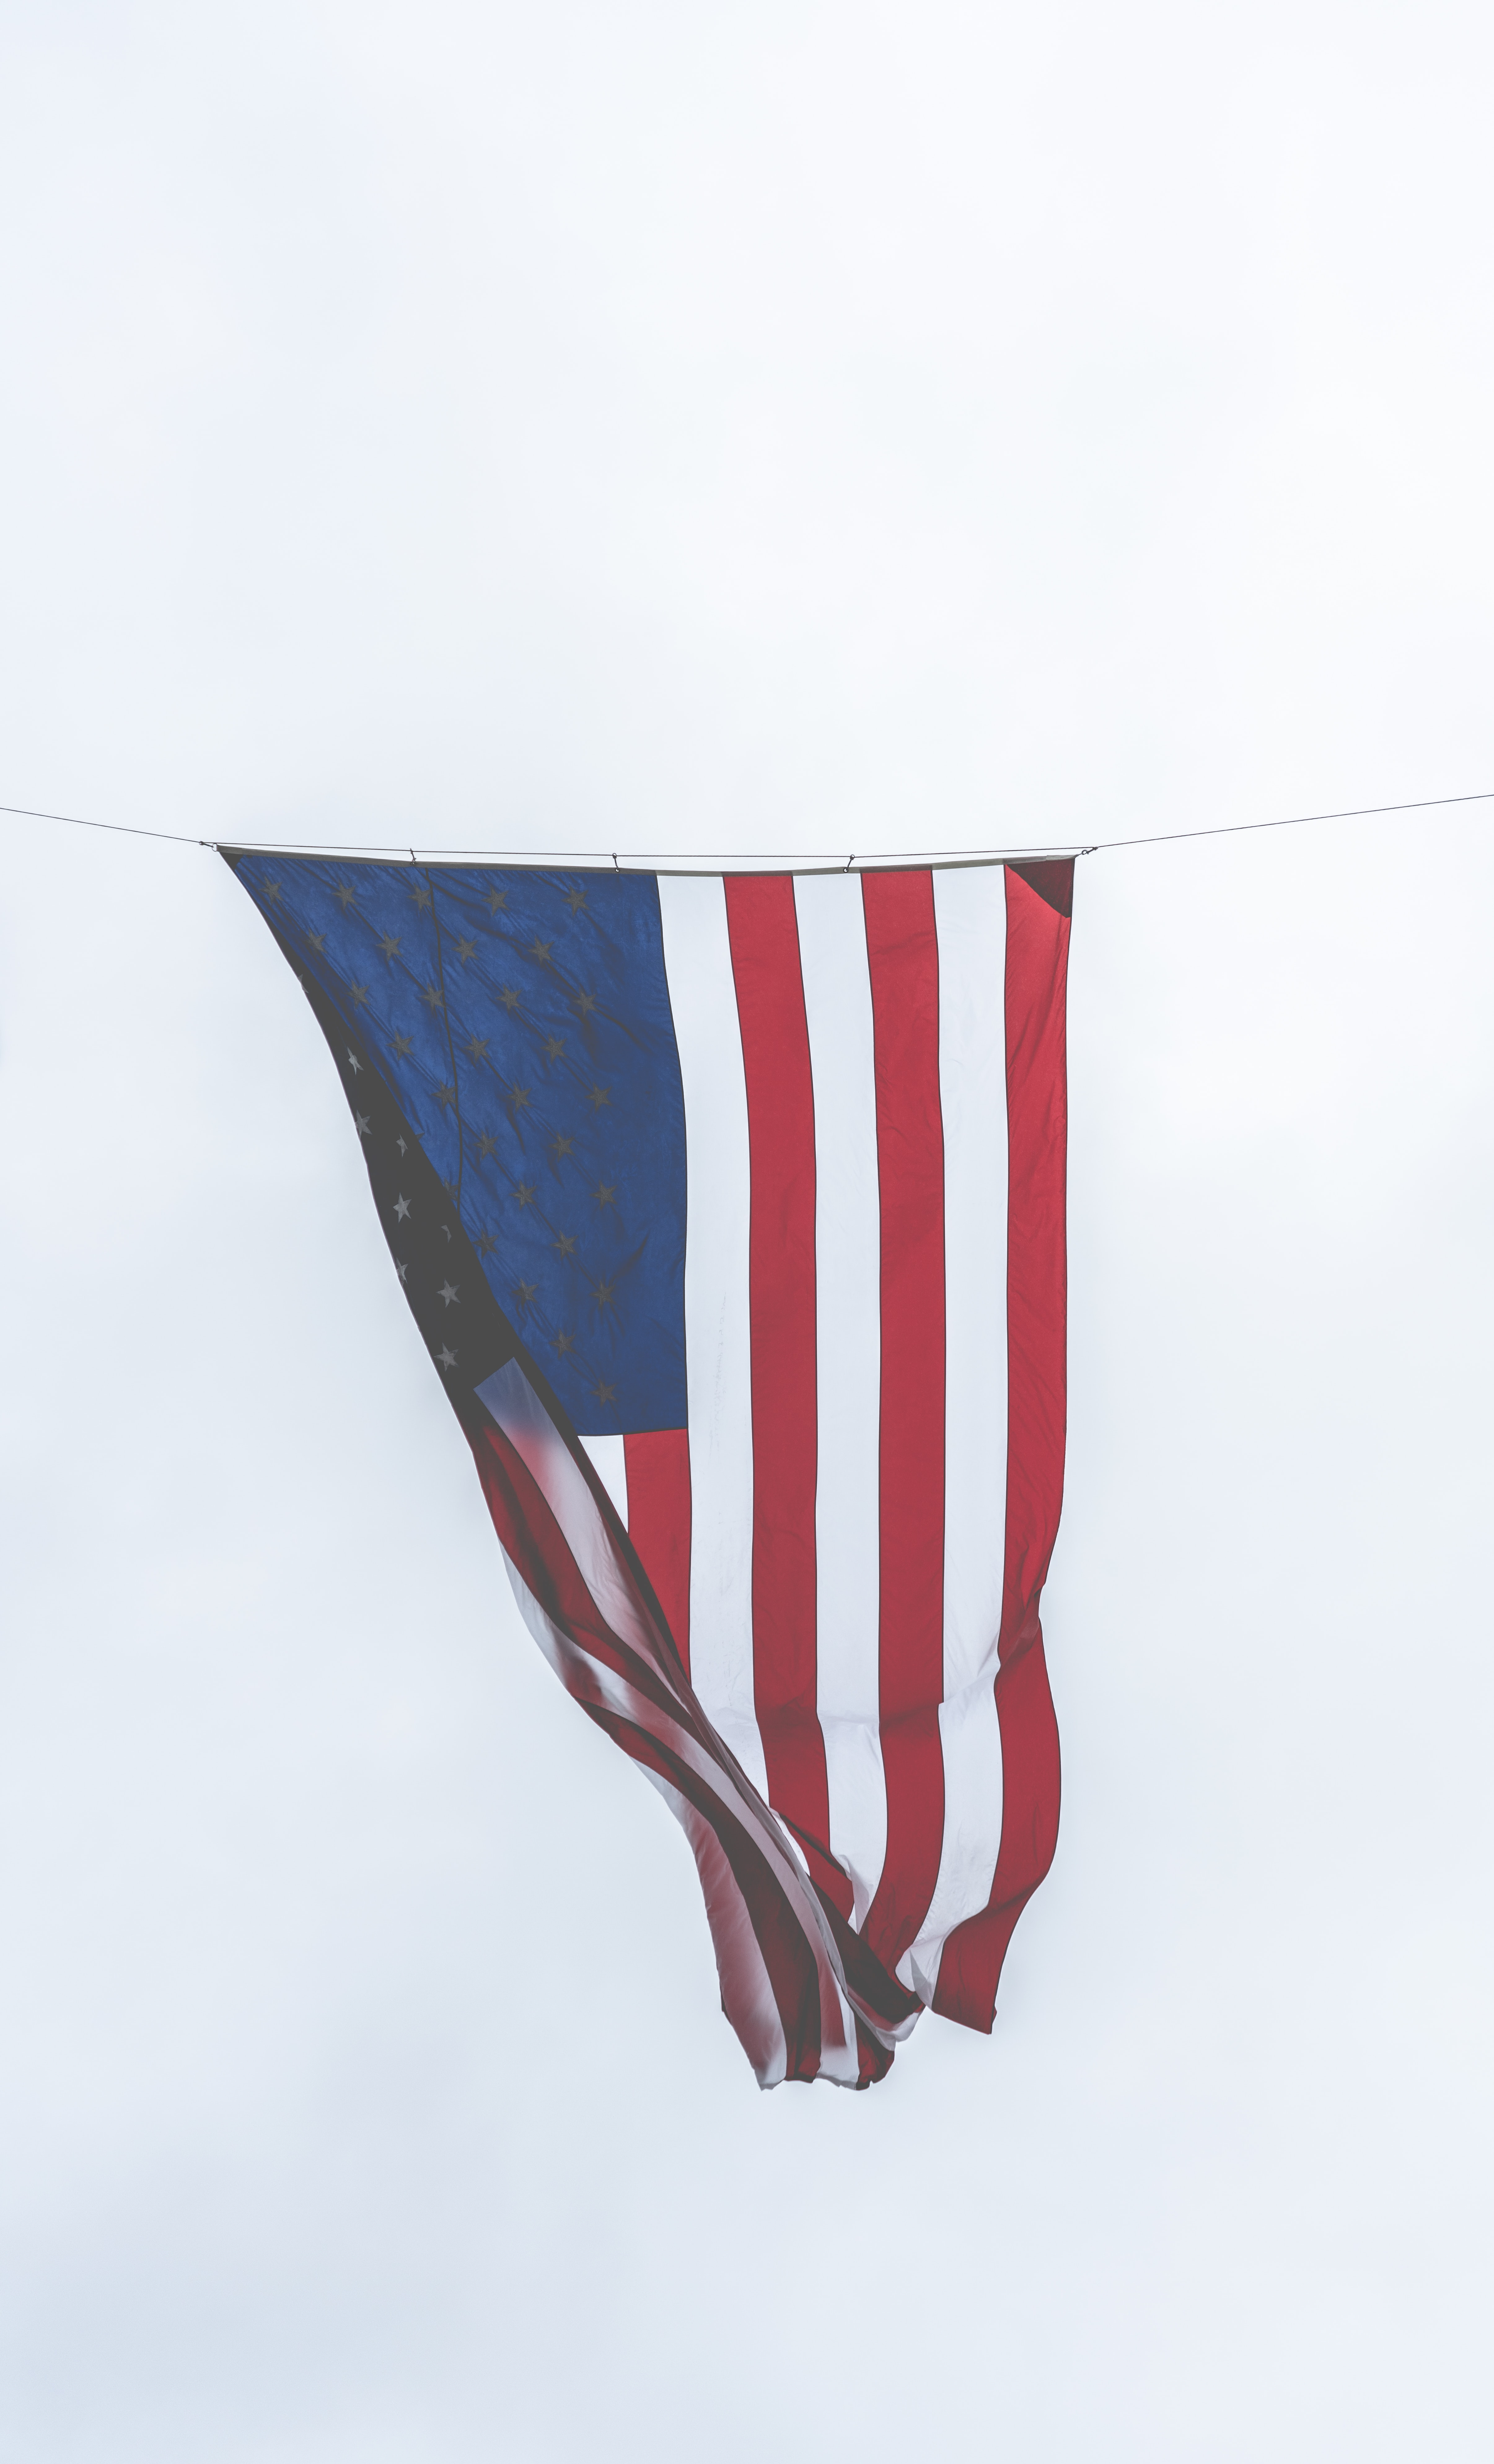 flag of USA hanged on string